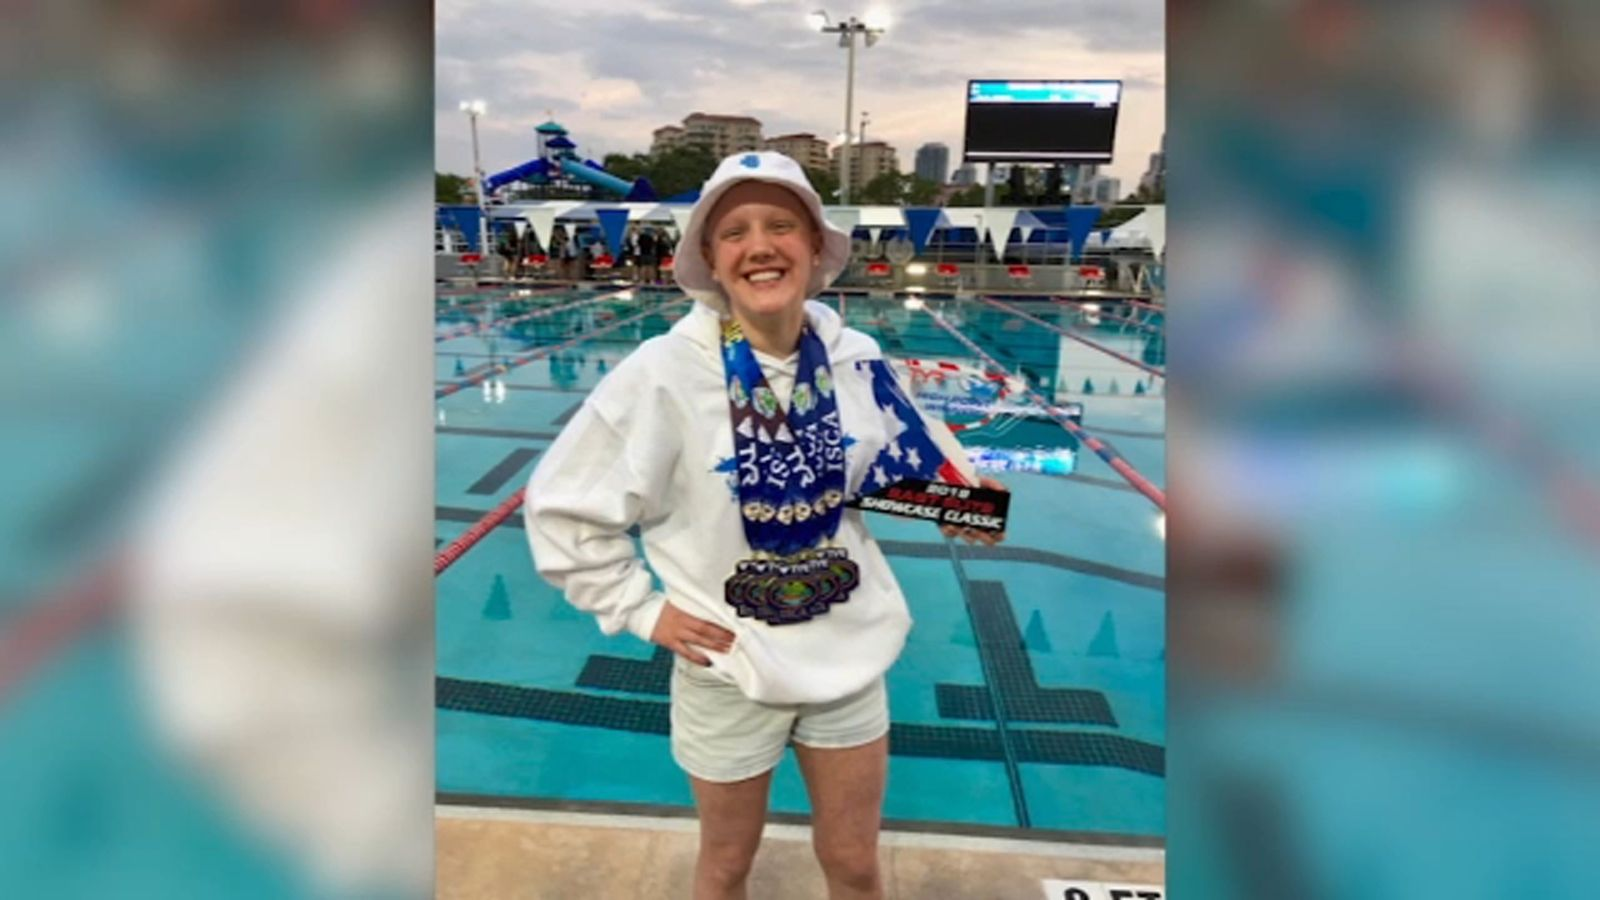 Sugar Grove teen Leah Hayes to make Olympic swimming trial debut in Omaha in hopes of making Team USA